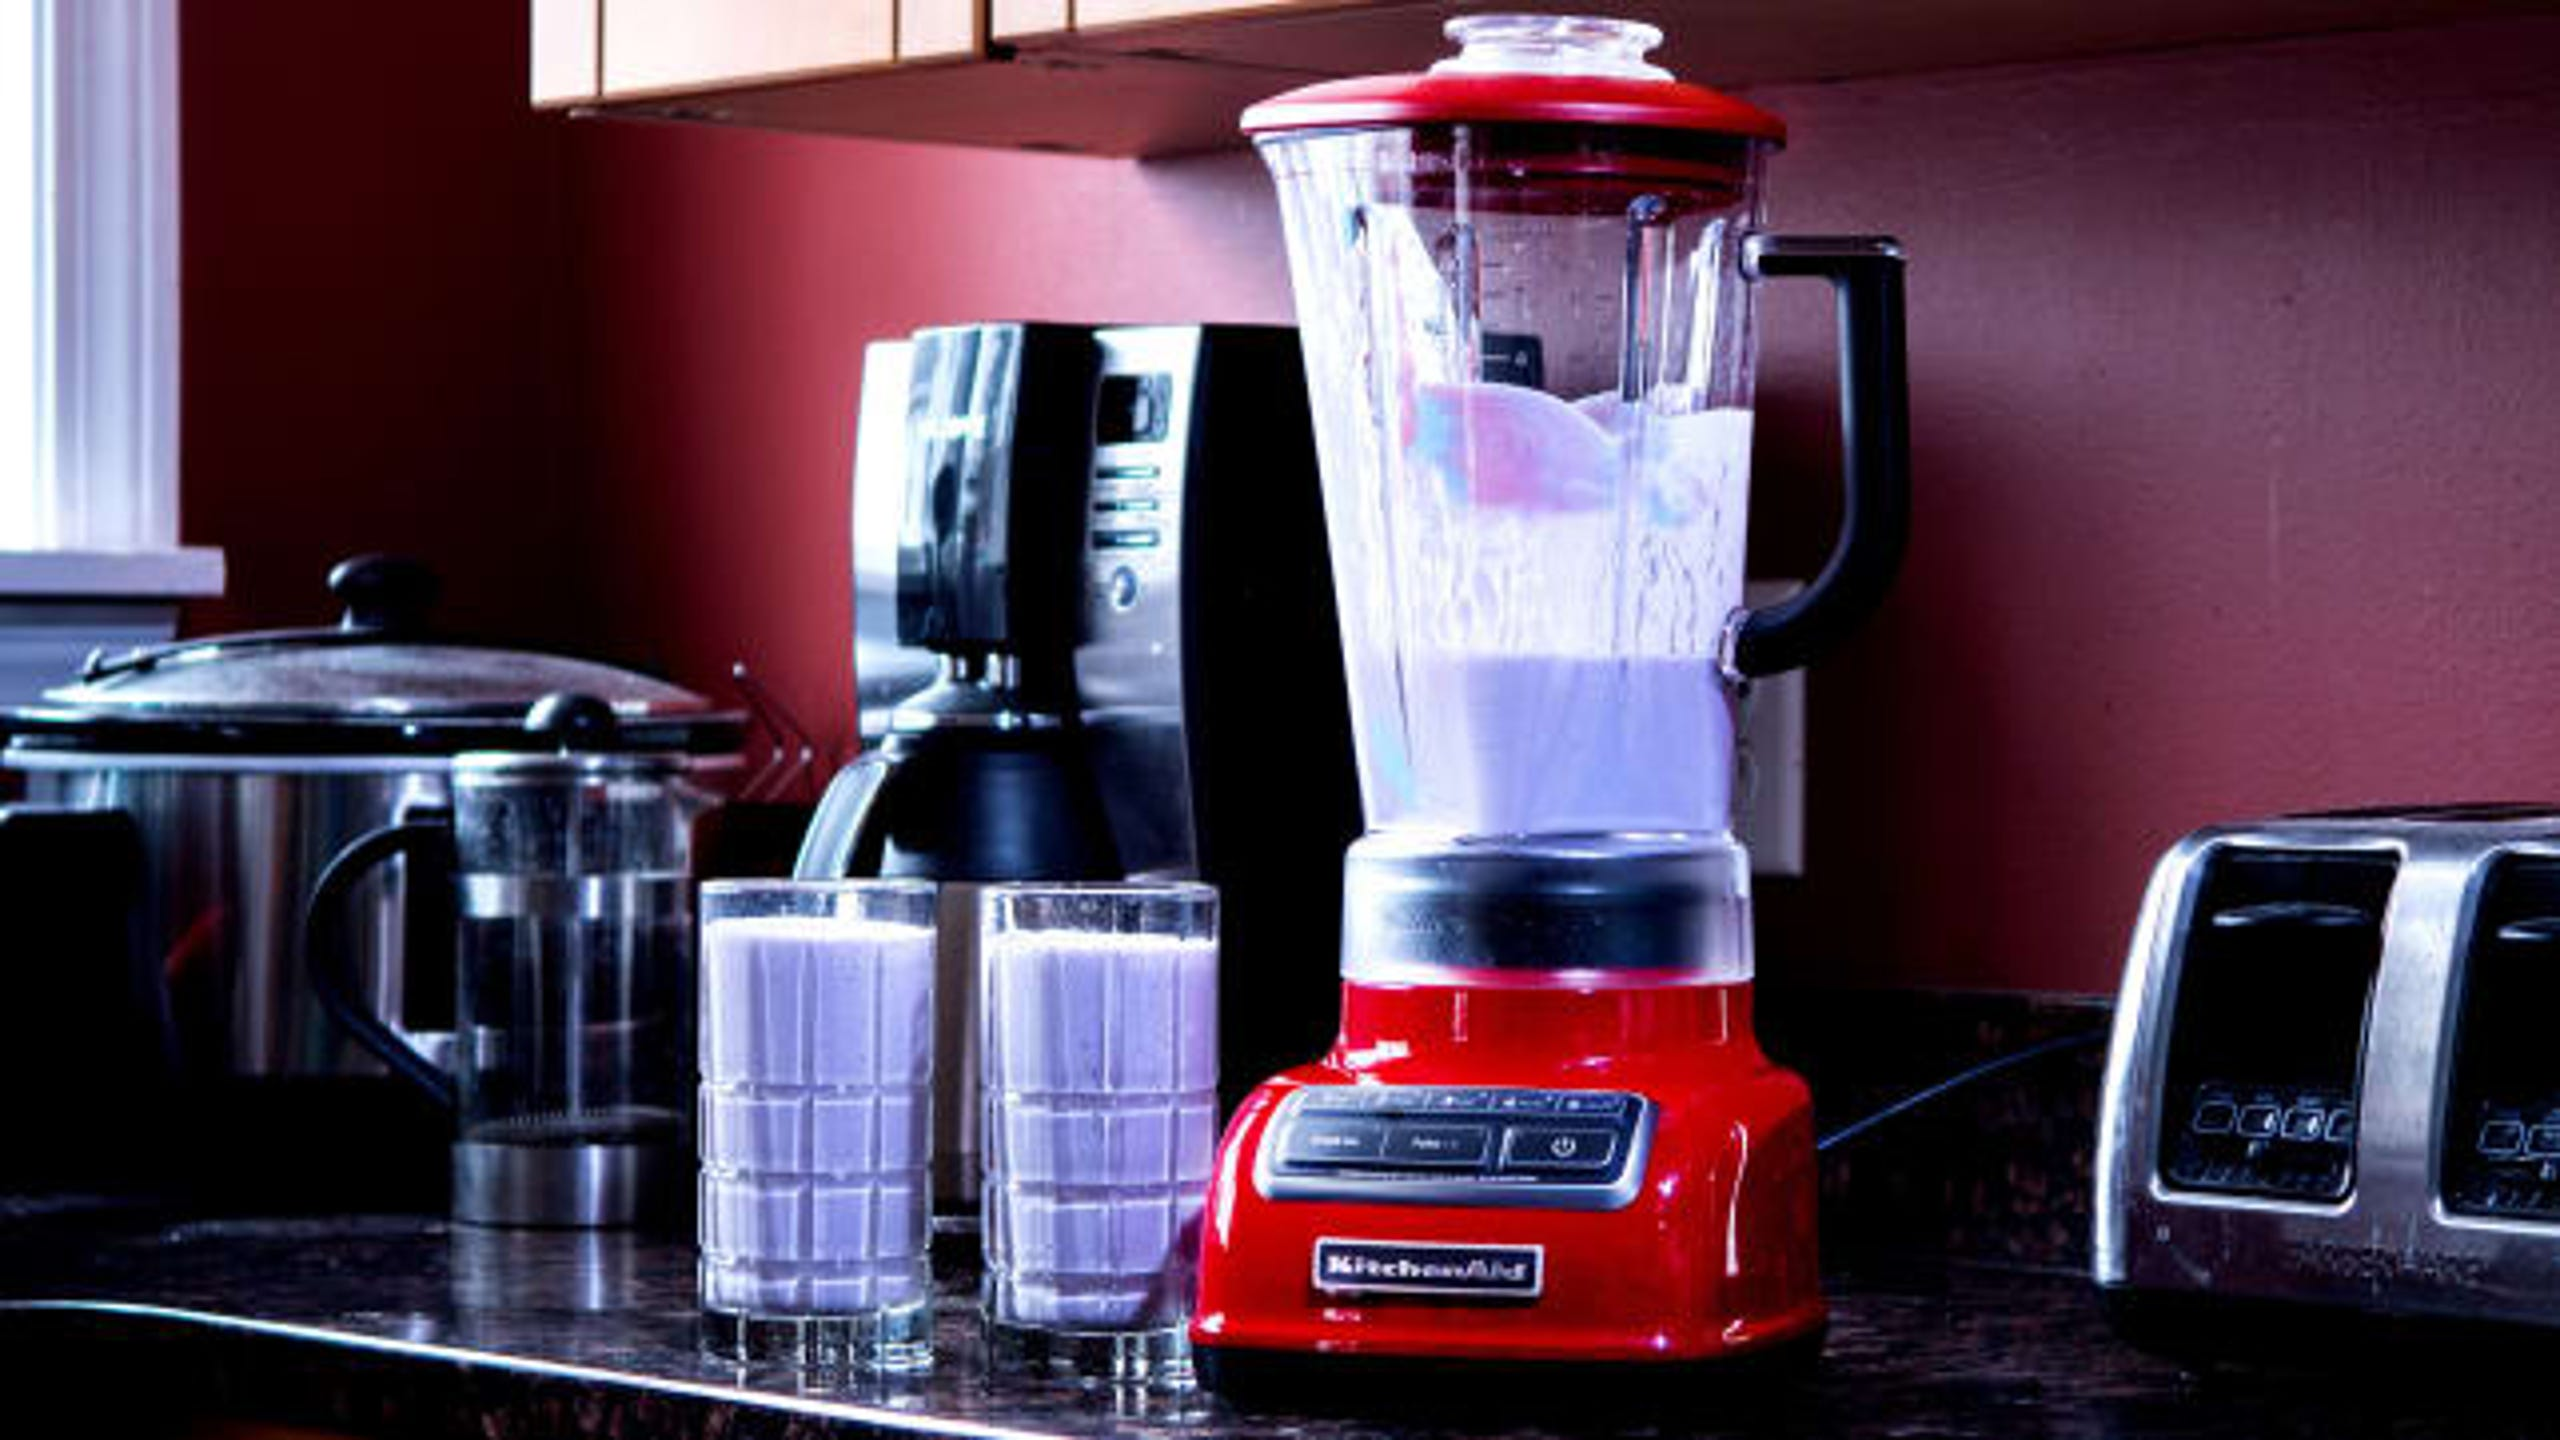 "Along with all the other annoying flu symptoms, loss of appetite can drain you of energy and make you feel incredibly worse for wear. While you may not be able to stomach eating some soup or crackers, a yummy smoothie can be easy to keep down and also give you the nutrients and vitamins you need to start feeling better. To whip one up, we recommend the the KitchenAid 5-Speed Diamond Blender, which is&nbsp;<a href=""https://www.reviewed.com/home-outdoors/best-right-now/the-best-affordable-blenders?utm_source=usat&amp;utm_medium=referral&amp;utm_campaign=collab"" target=""_blank"">the best affordable blender</a>&nbsp;we've ever tried, as it can crush ice, and blend fruits and veggies like a breeze. (<strong><a href=""https://www.amazon.com/KitchenAid-KSB1575ER-5-Speed-60-Ounce-BPA-Free/dp/B00CGSES9I/ref=as_li_ss_tl?ie=UTF8&amp;linkCode=ll1&amp;tag=usatgallery-20&amp;linkId=c254e5f2bbcfa90fff46946091eb352c&amp;language=en_US"" target=""_blank"">$104.99 on Amazon</a></strong>)"